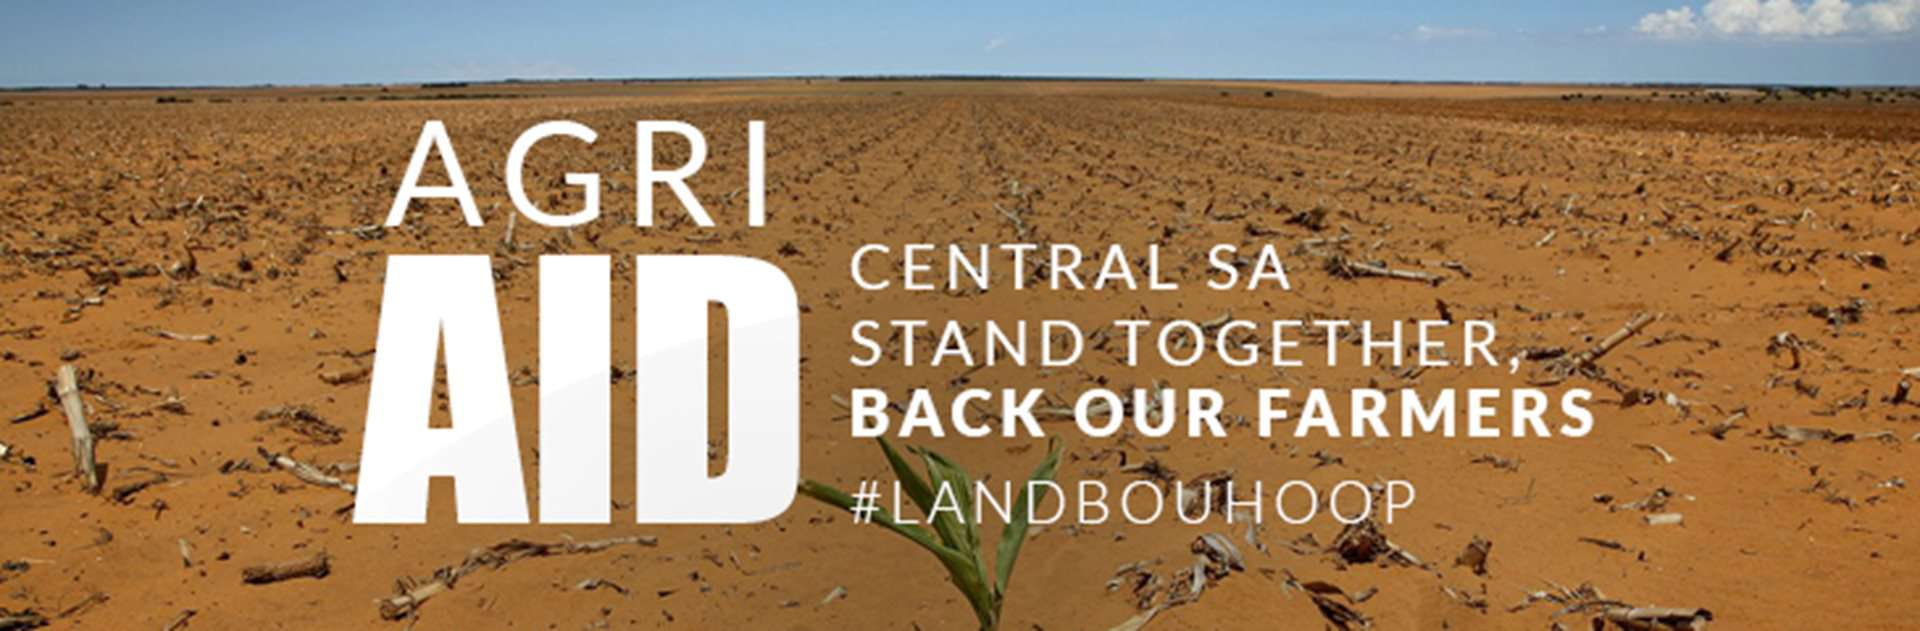 Central SA stand together, back our farmers